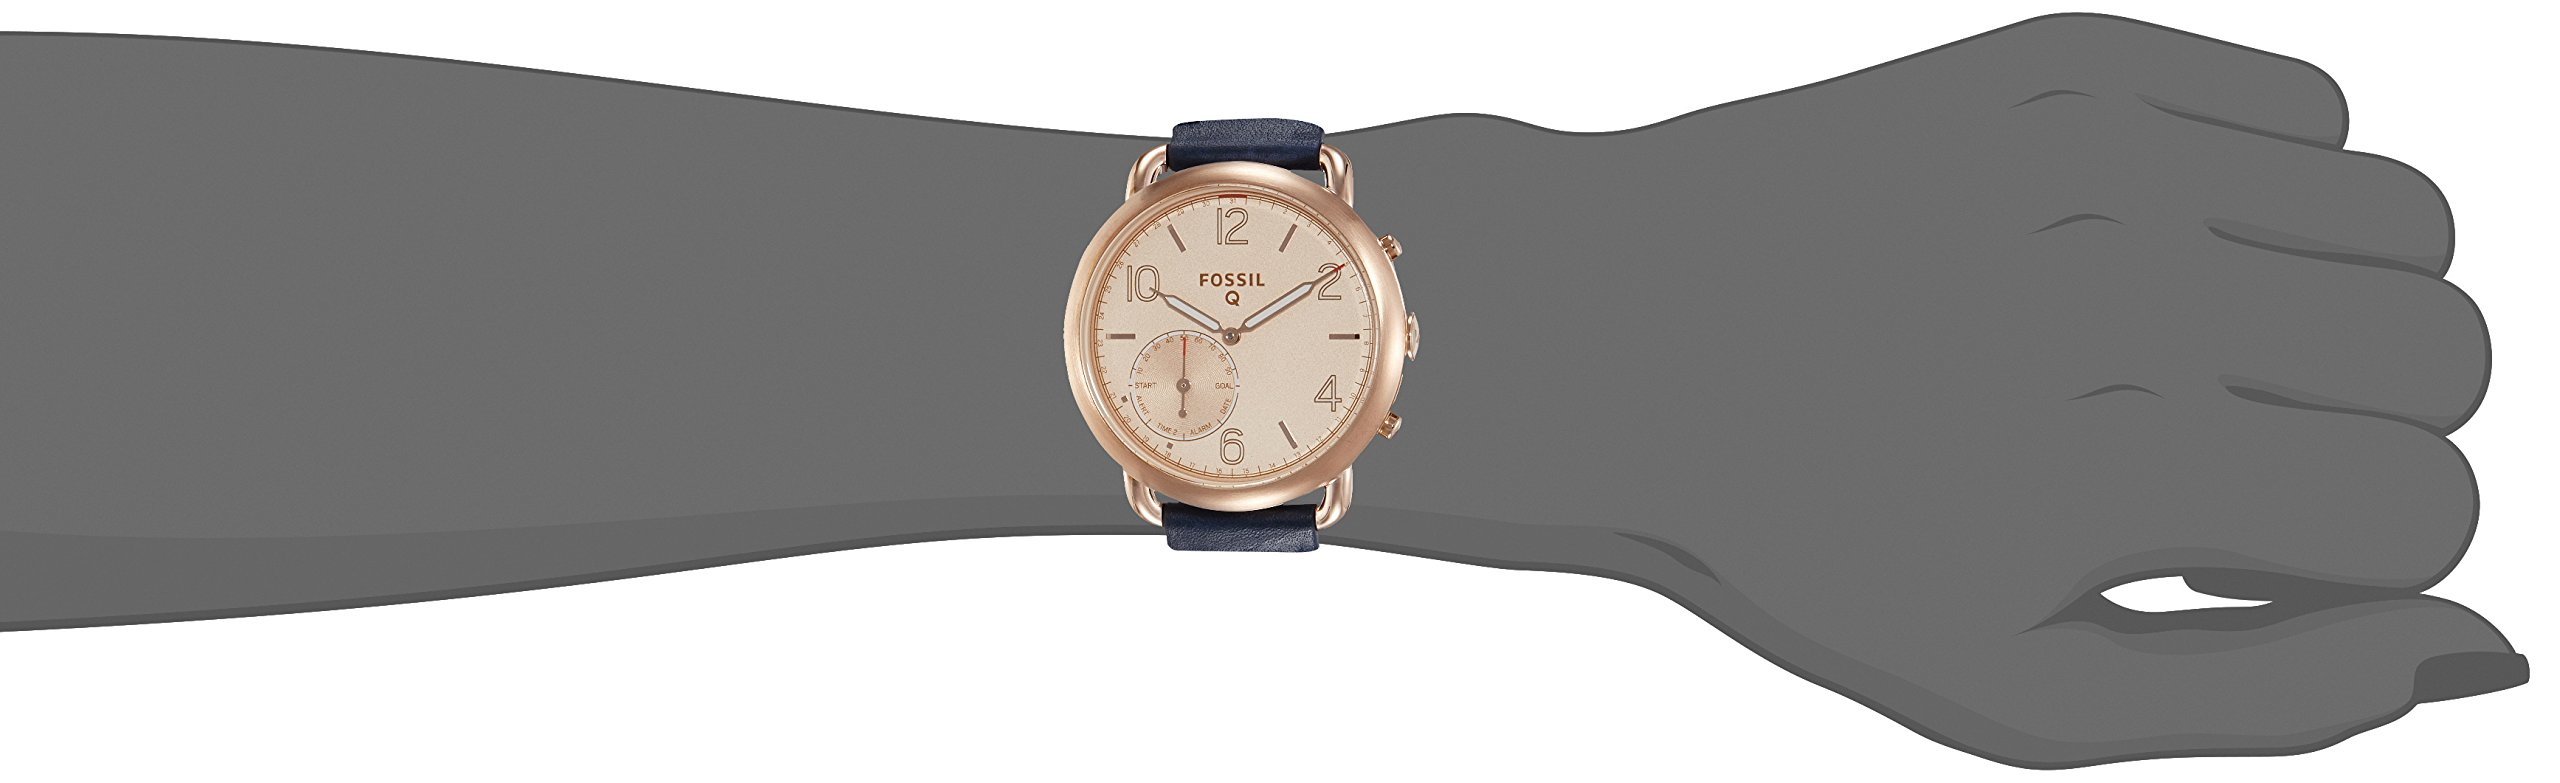 Fossil Hybrid Smartwatch - Q Tailor Dark Navy Leather by Fossil (Image #2)